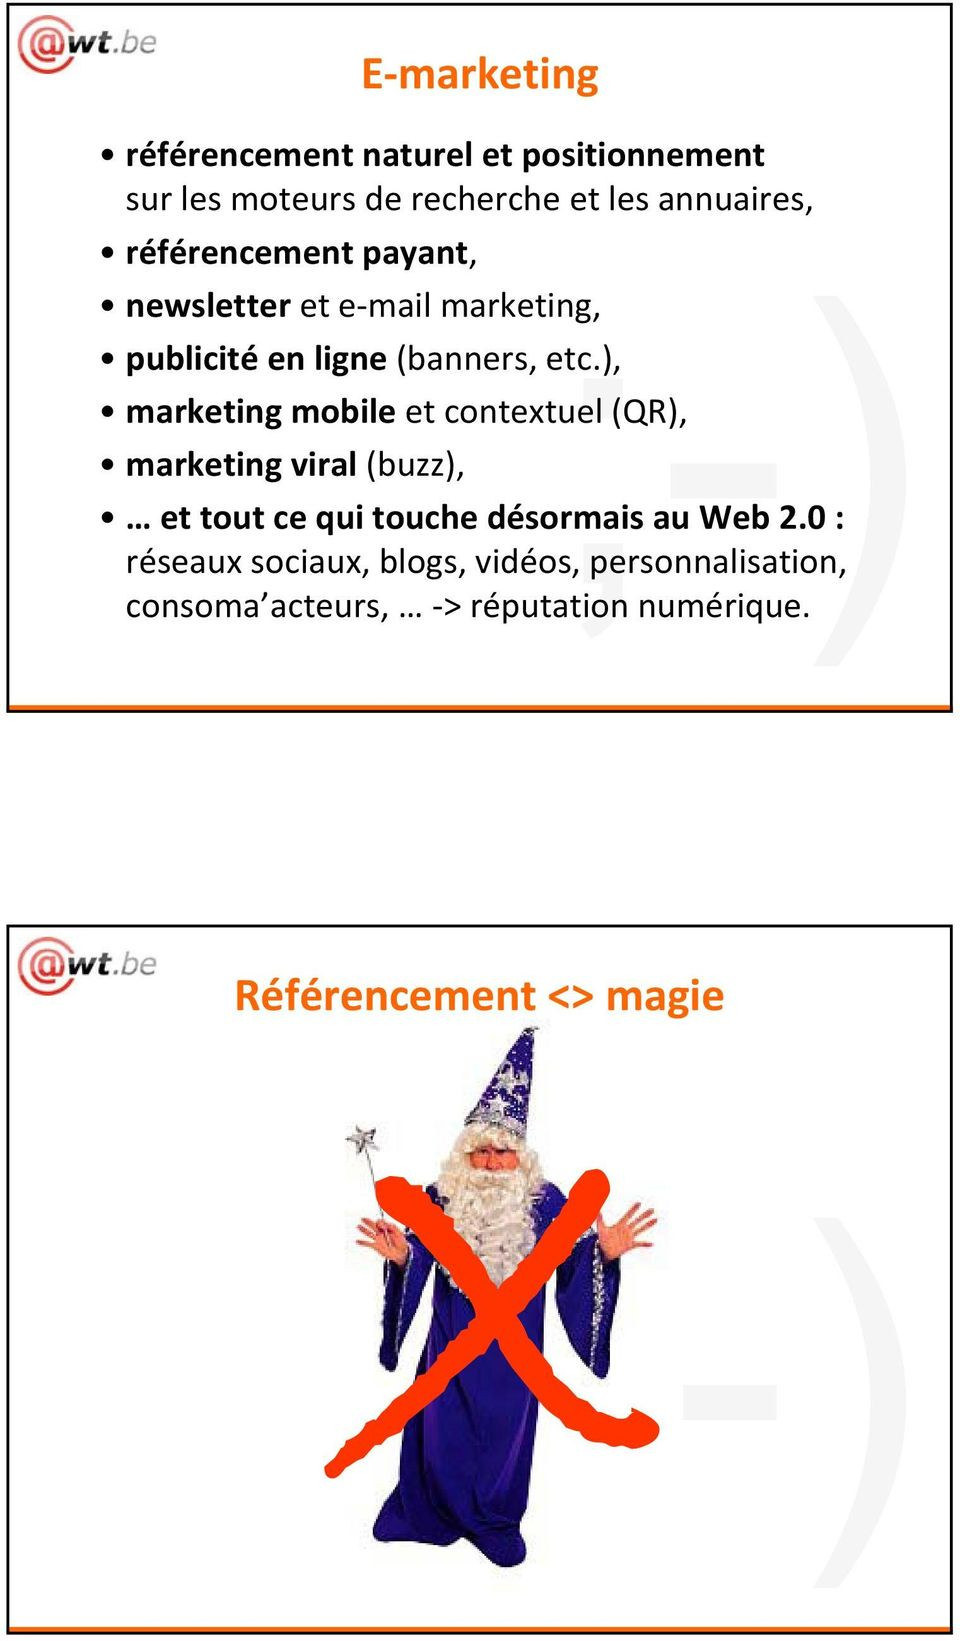 ), marketing mobile et contextuel (QR), marketing viral (buzz), et tout ce qui touche désormais au